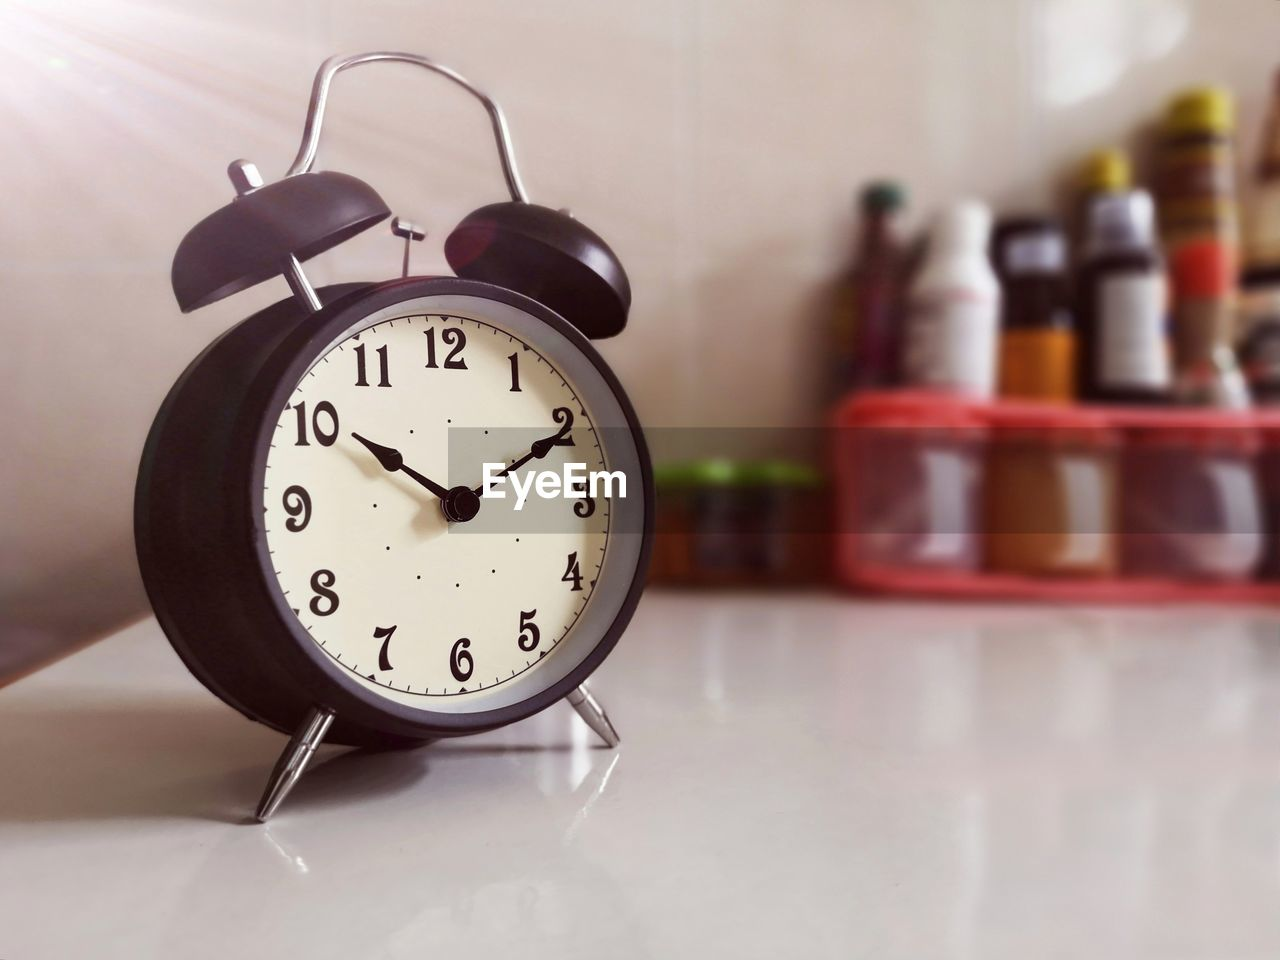 indoors, clock, focus on foreground, time, container, still life, table, no people, bottle, number, alarm clock, close-up, domestic room, home interior, home, day, glass - material, wall - building feature, clock face, flooring